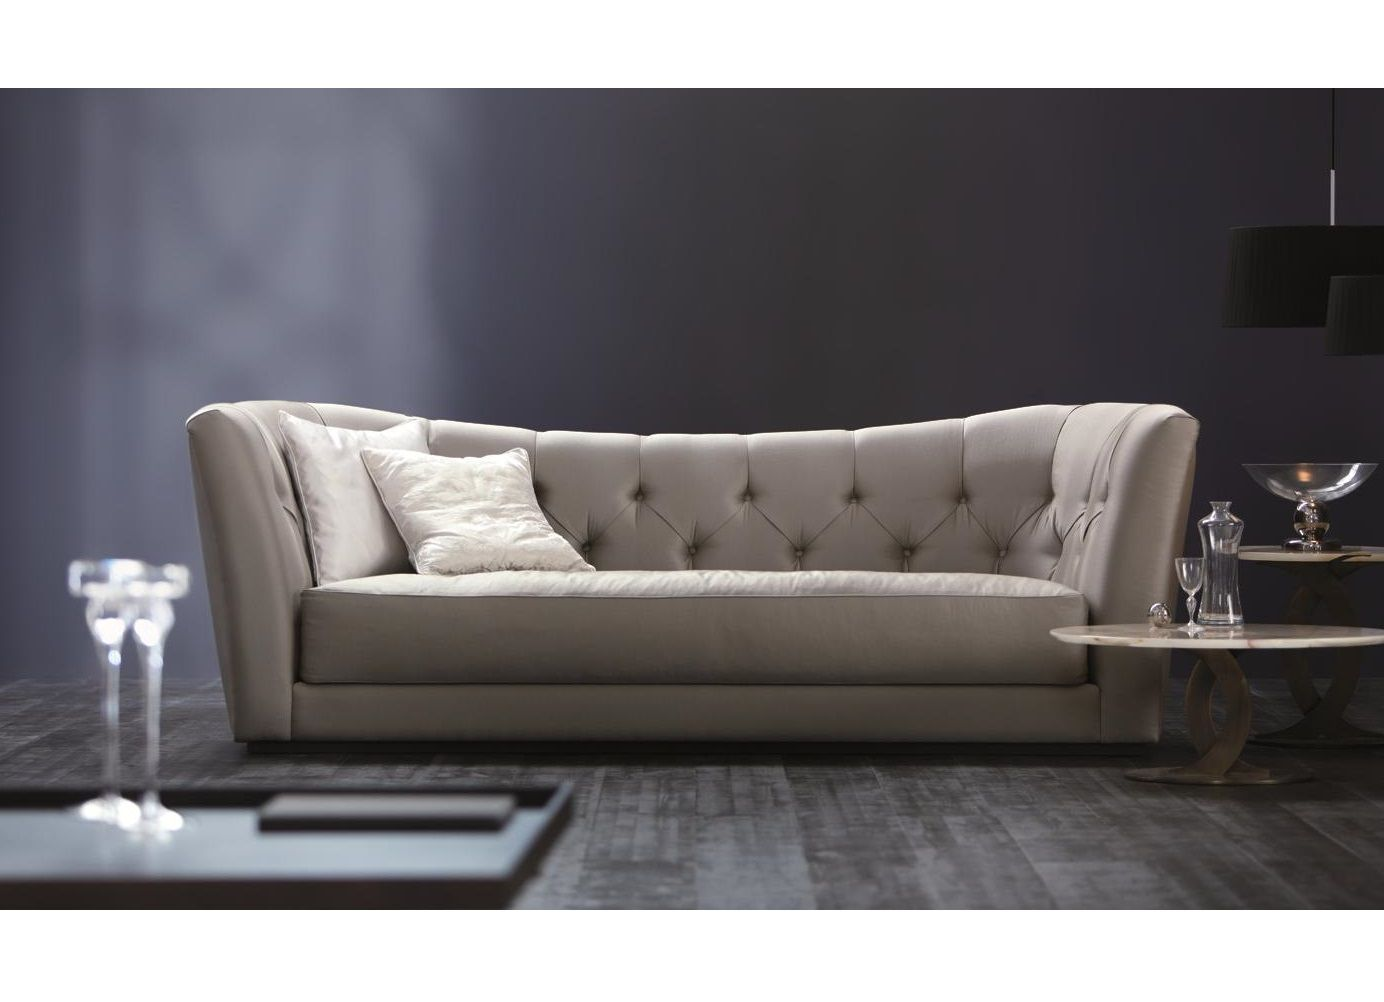 Butterfly 3 Seater Sofa Contemporary Sofa Design Modern Sofa Sofa Design